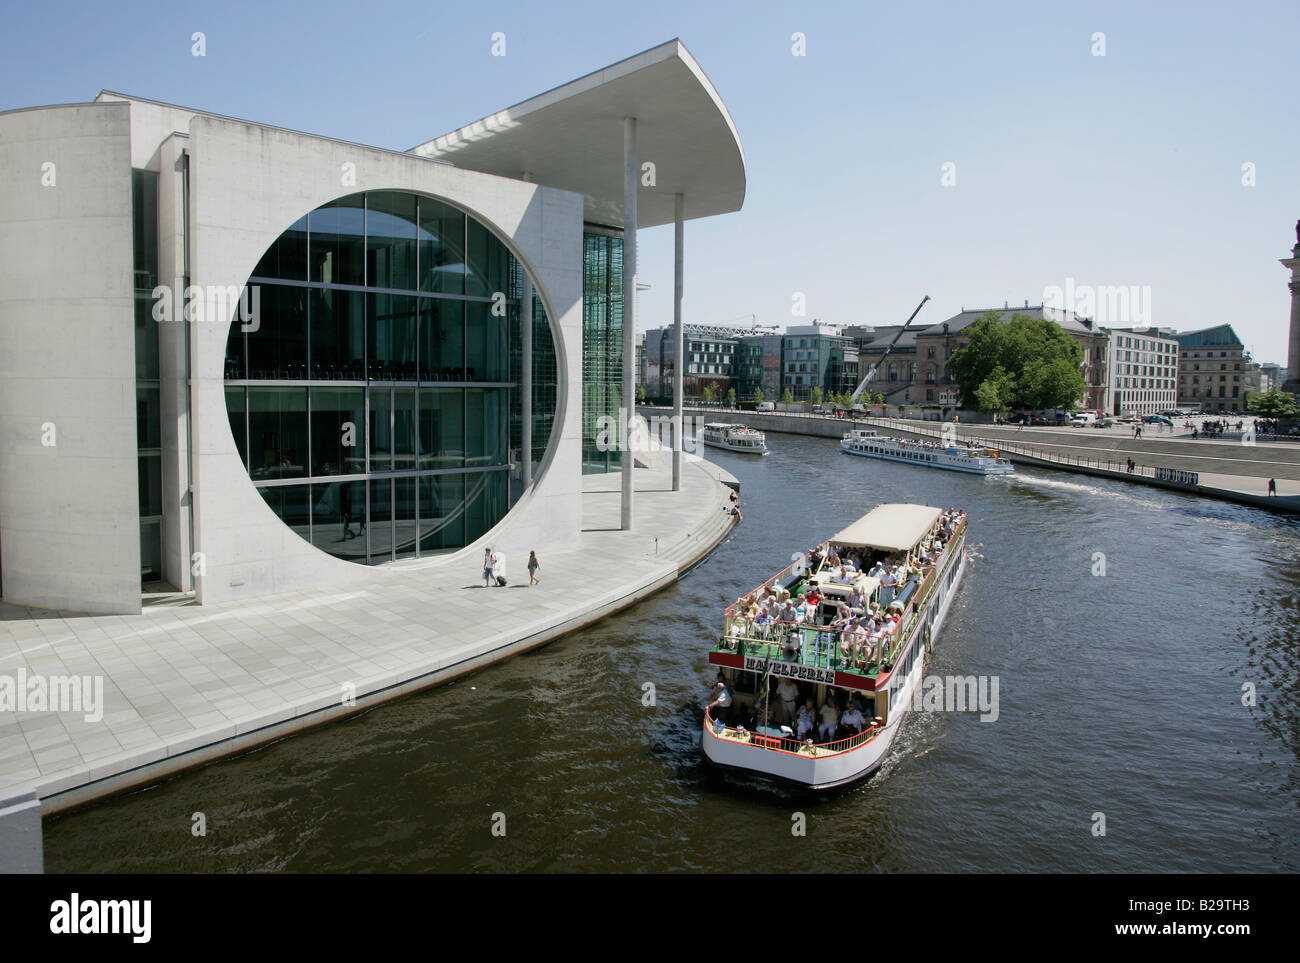 Government building Marie Elisabeth Lueders Haus at the river Spree sightseeing boat - Stock Image